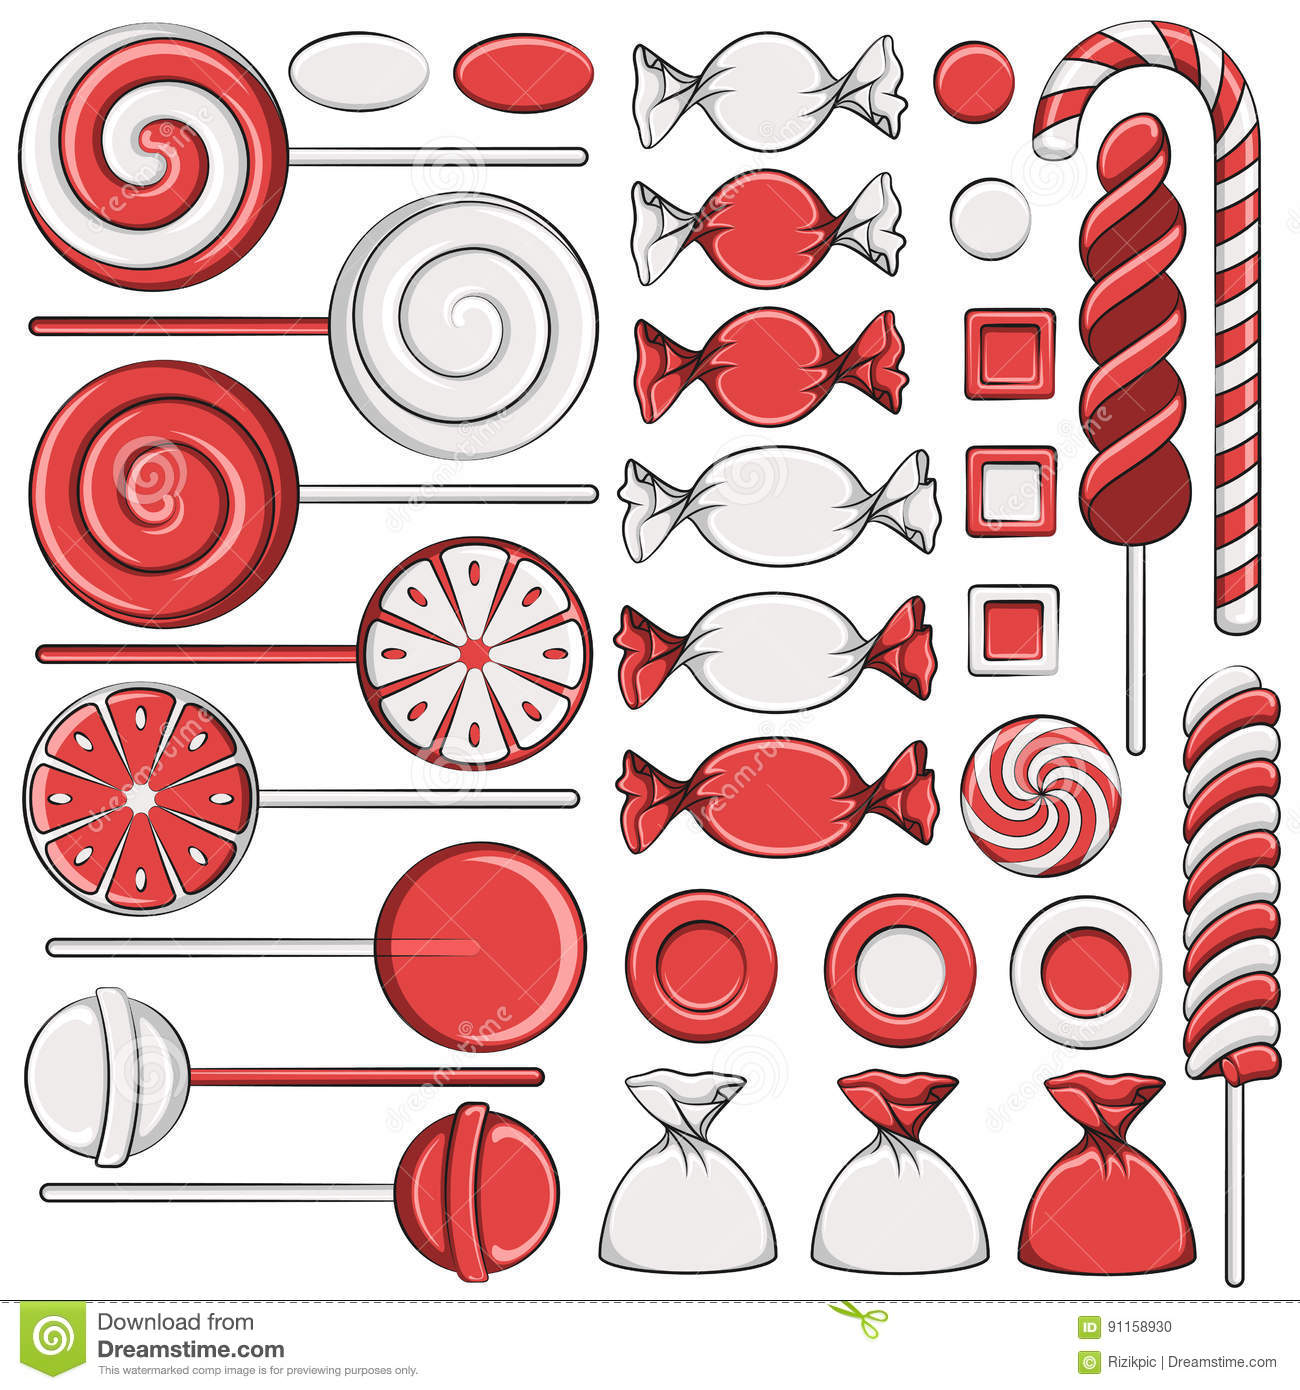 Objects Cartoons Illustrations Amp Vector Stock Images